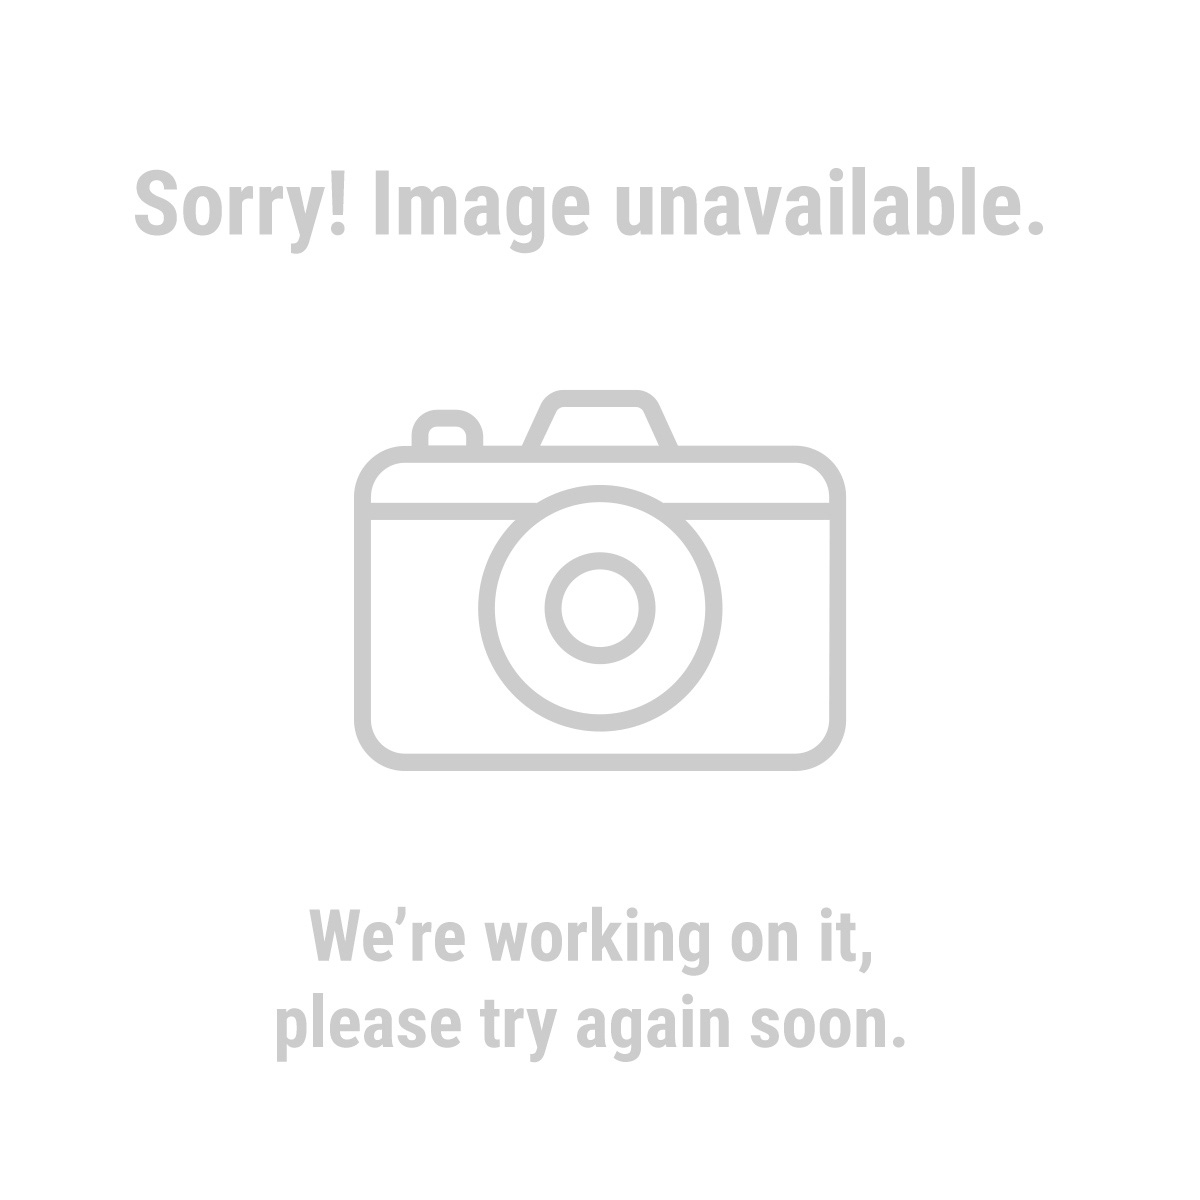 Central Pneumatic 61439 100 lb. Dual Media Portable Abrasive Blaster